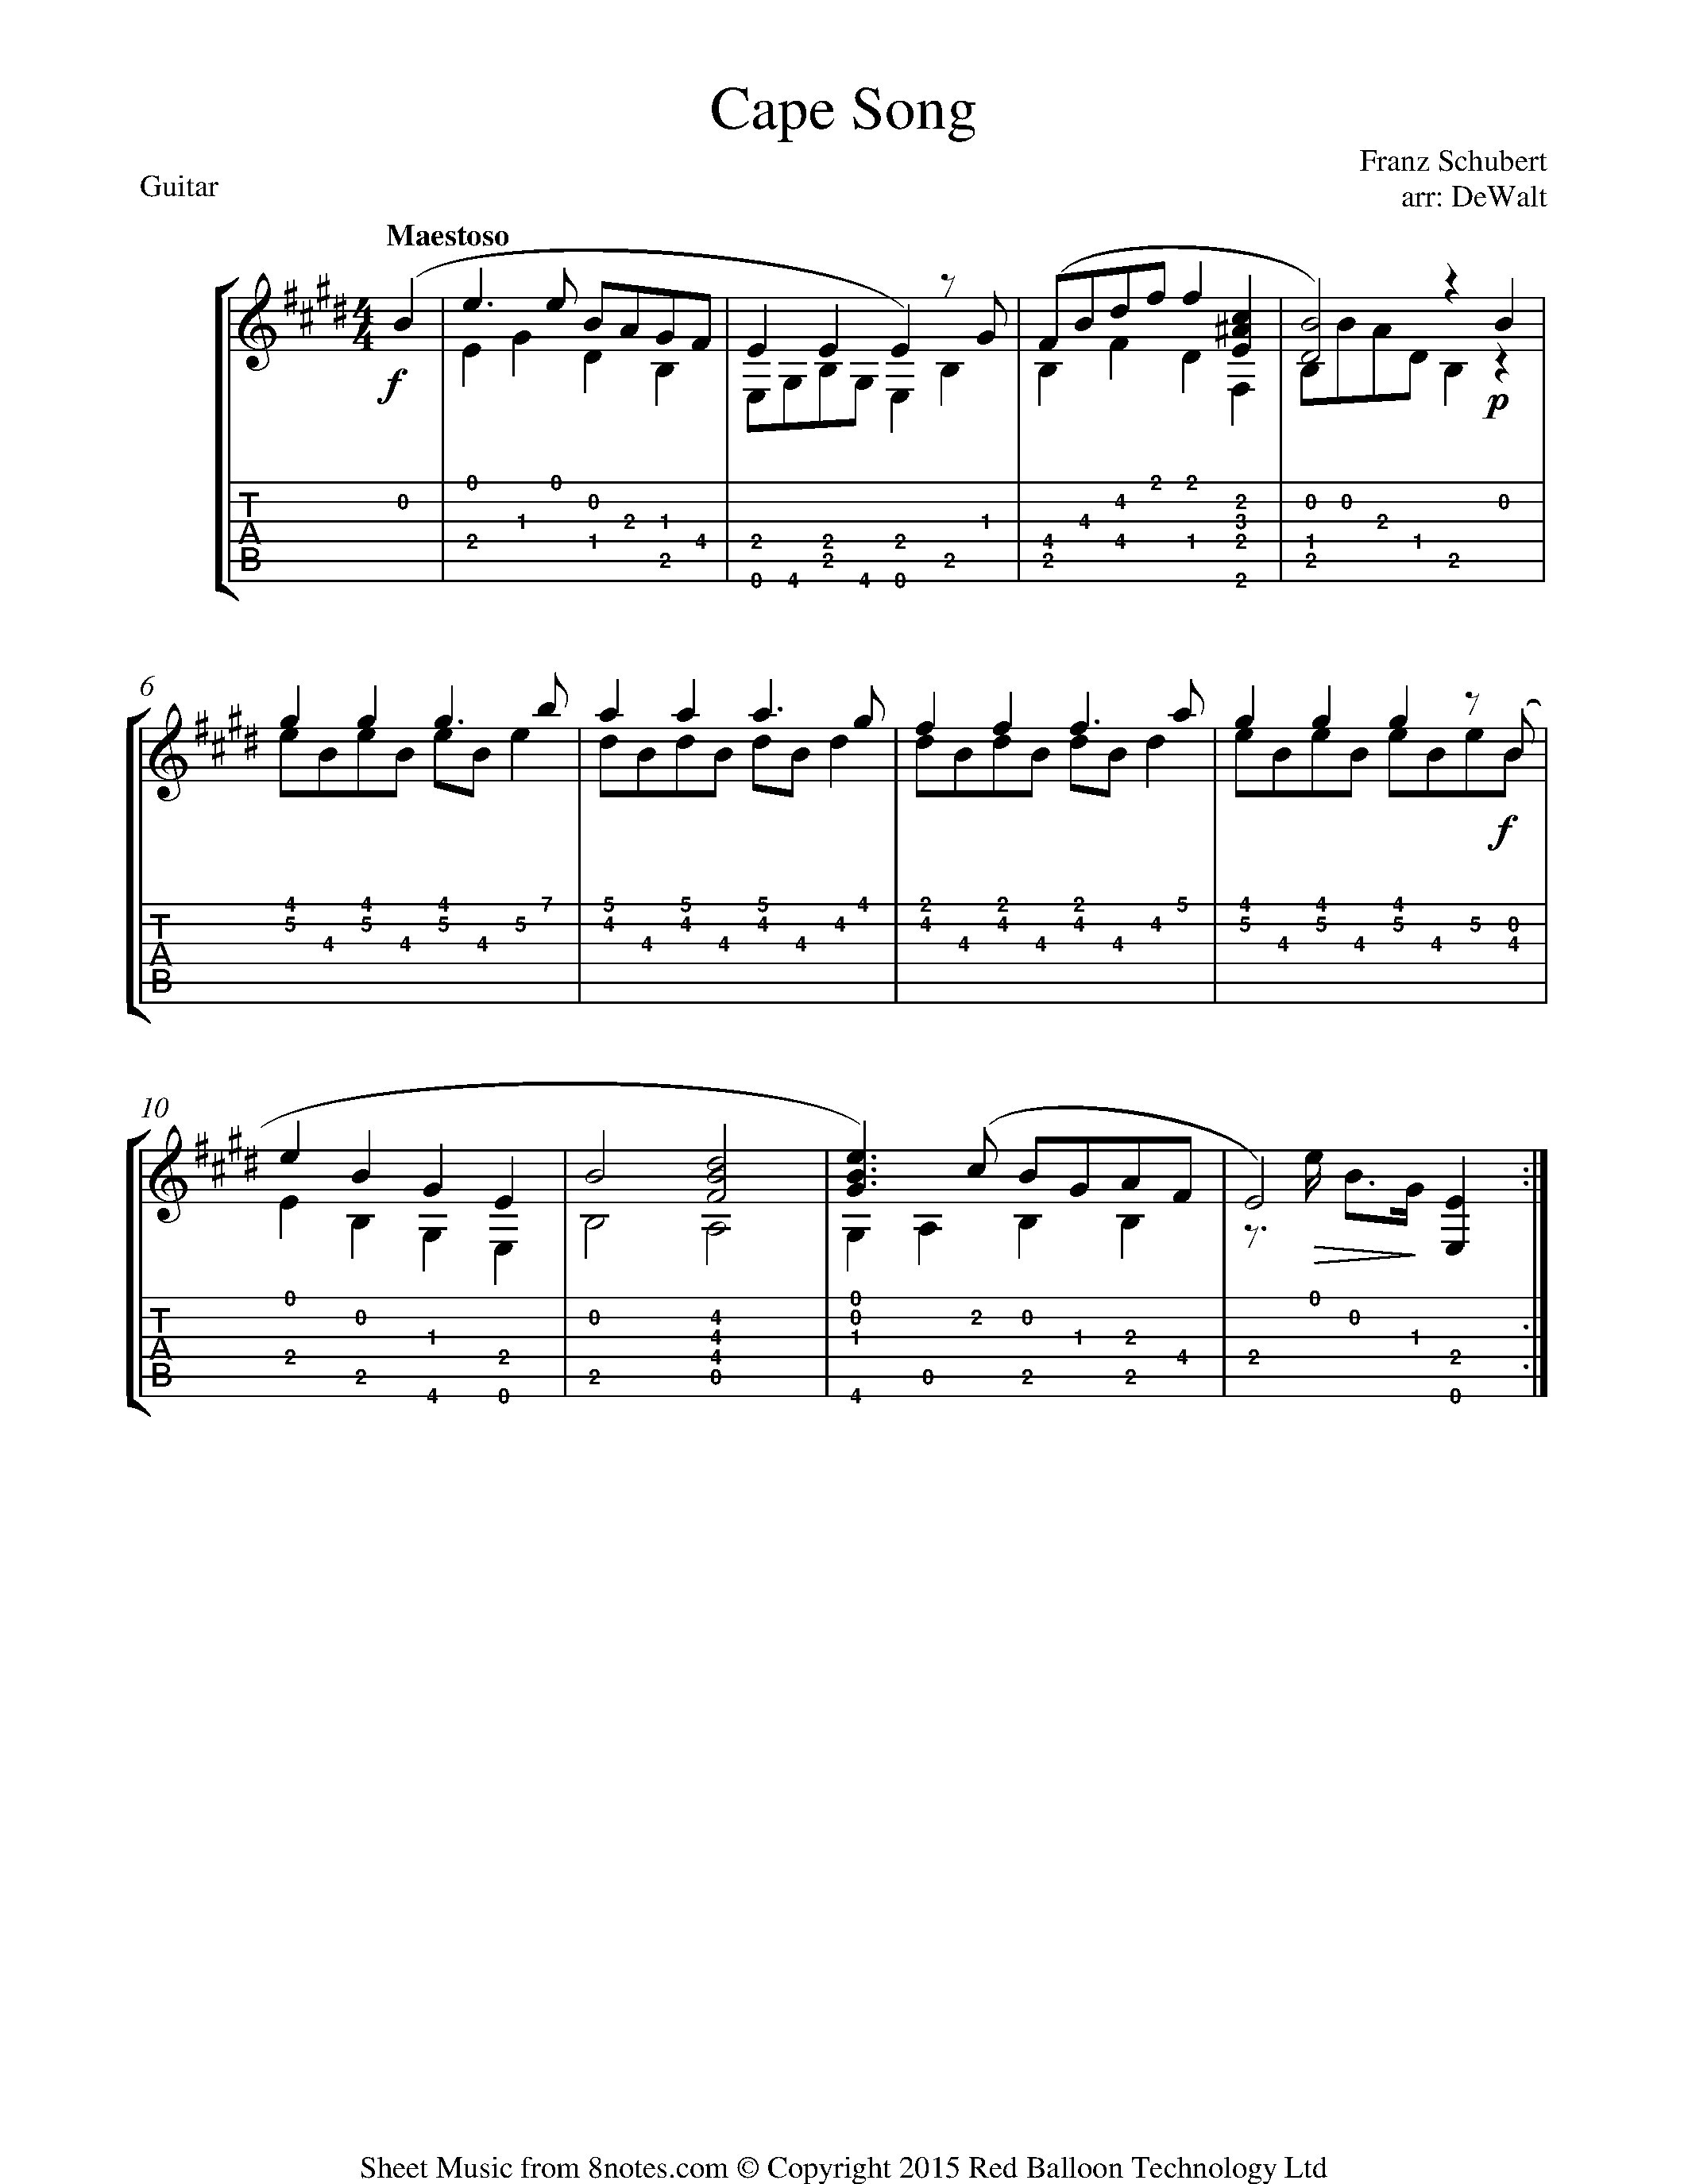 Free Guitar Sheet Music Lessons Resources